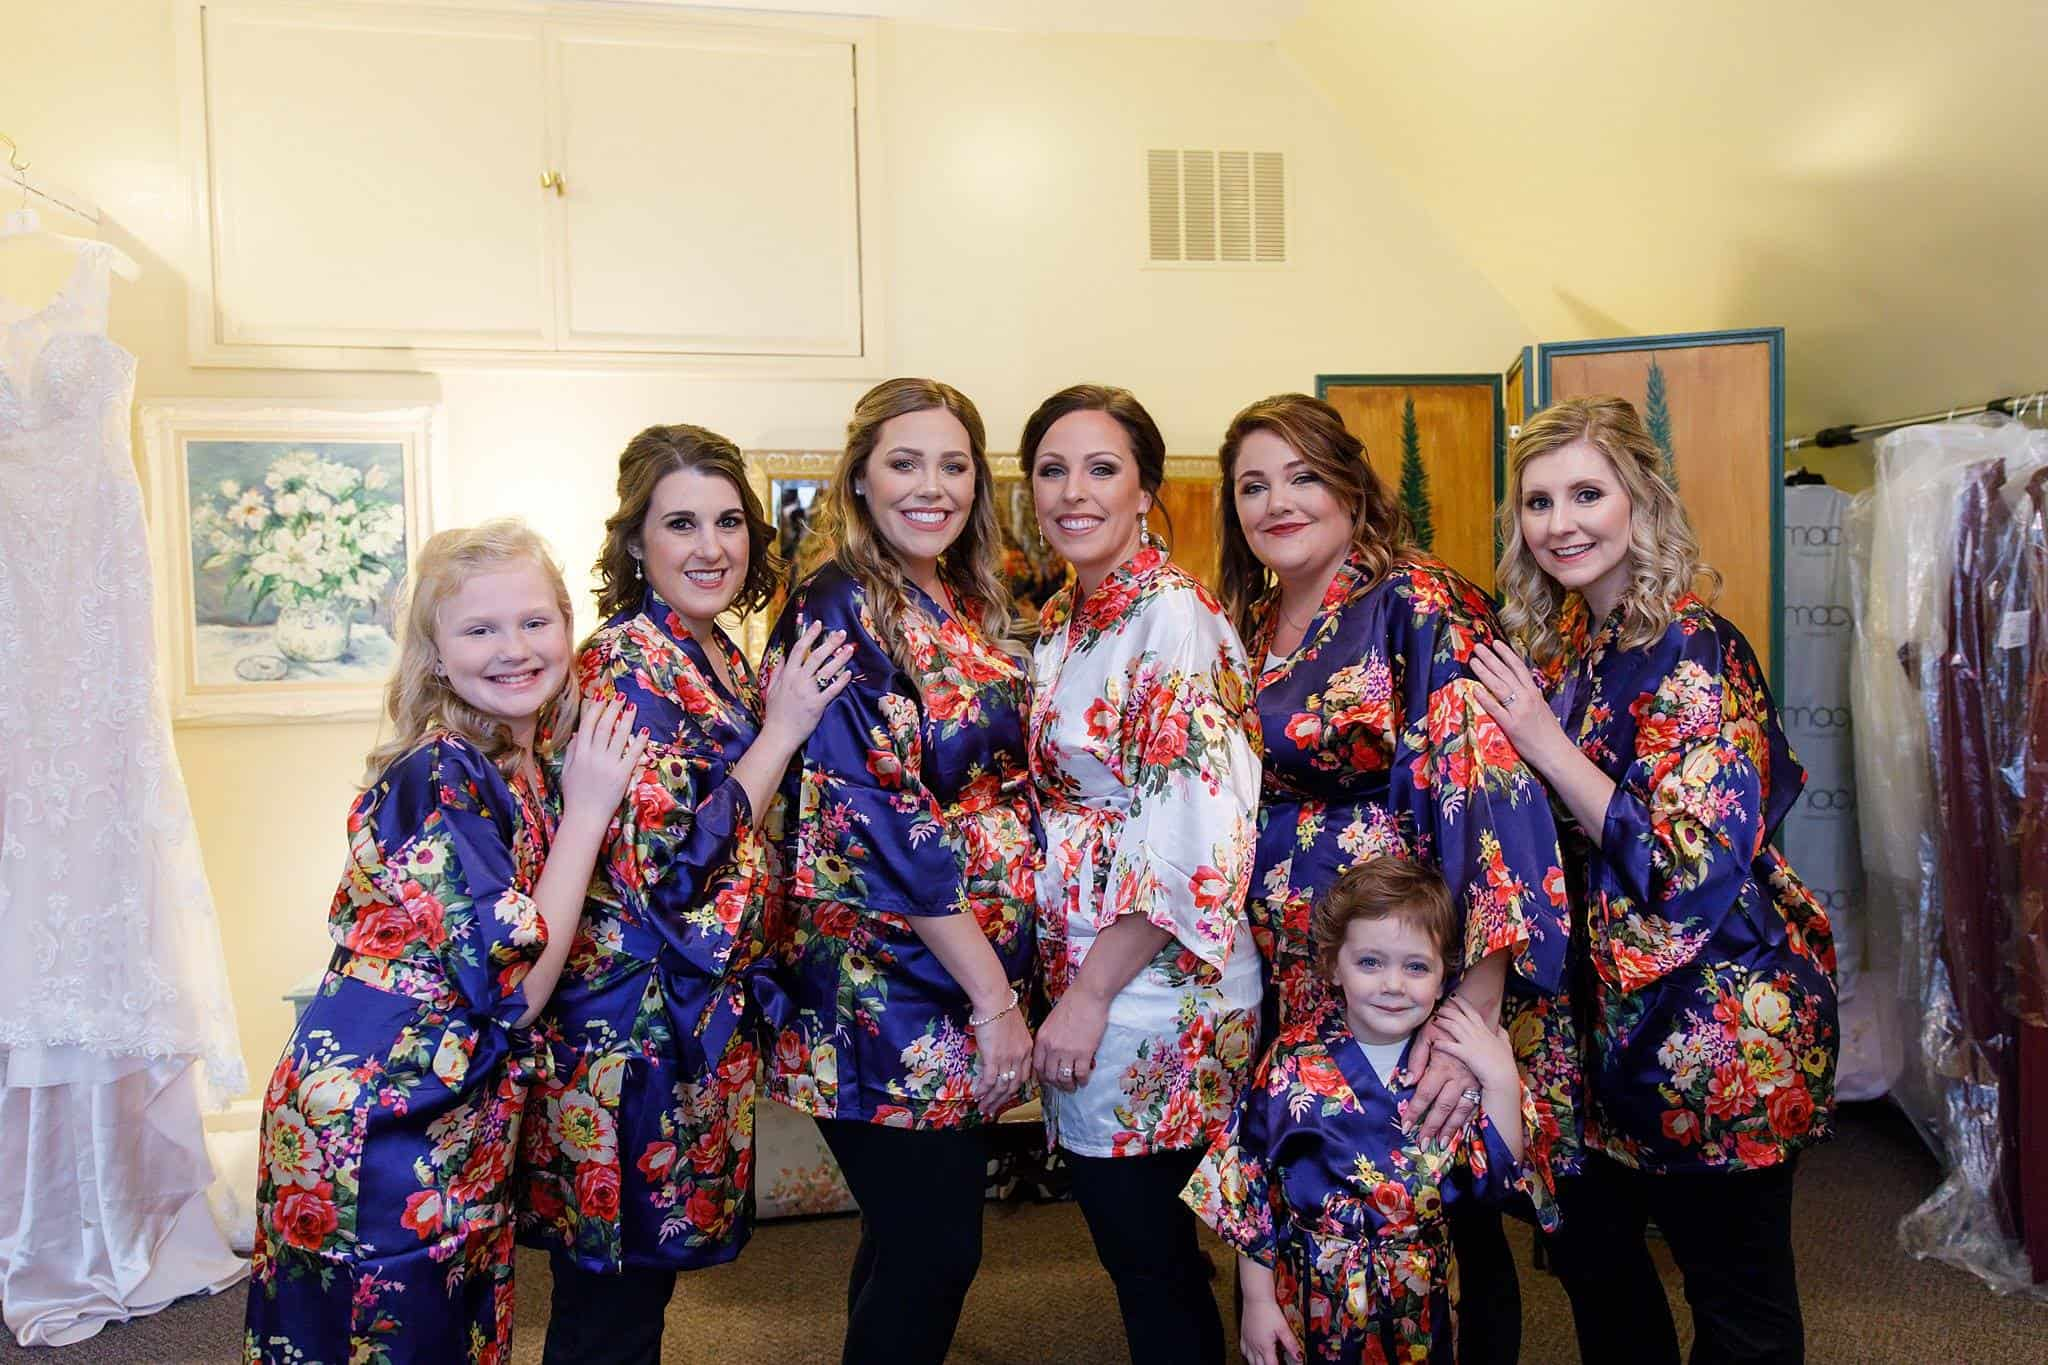 Bride with Bridesmaids wearing bright blue and pink robes before dressing in bridal suite